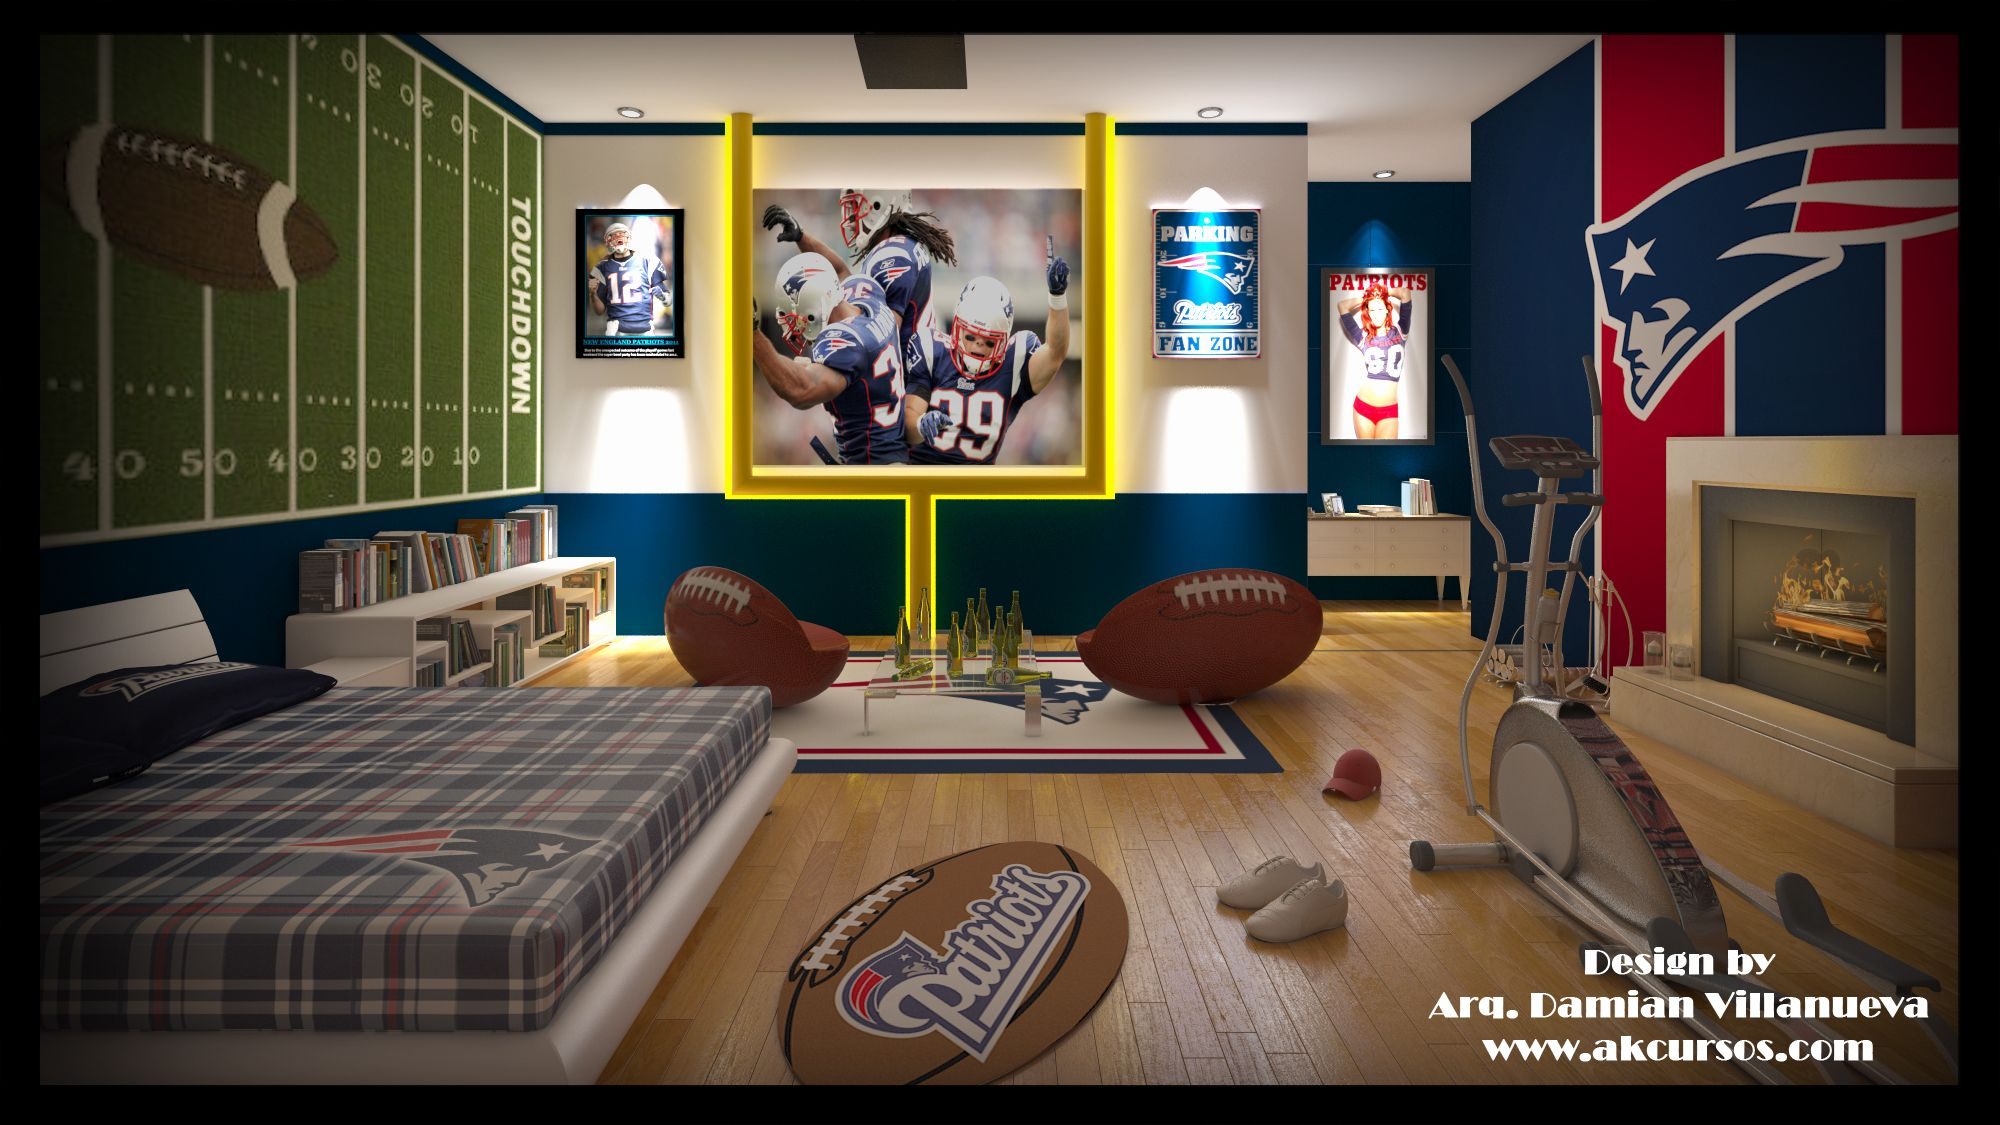 Oh my goodness wonder what luke would say if he came - New england patriots bedroom accessories ...